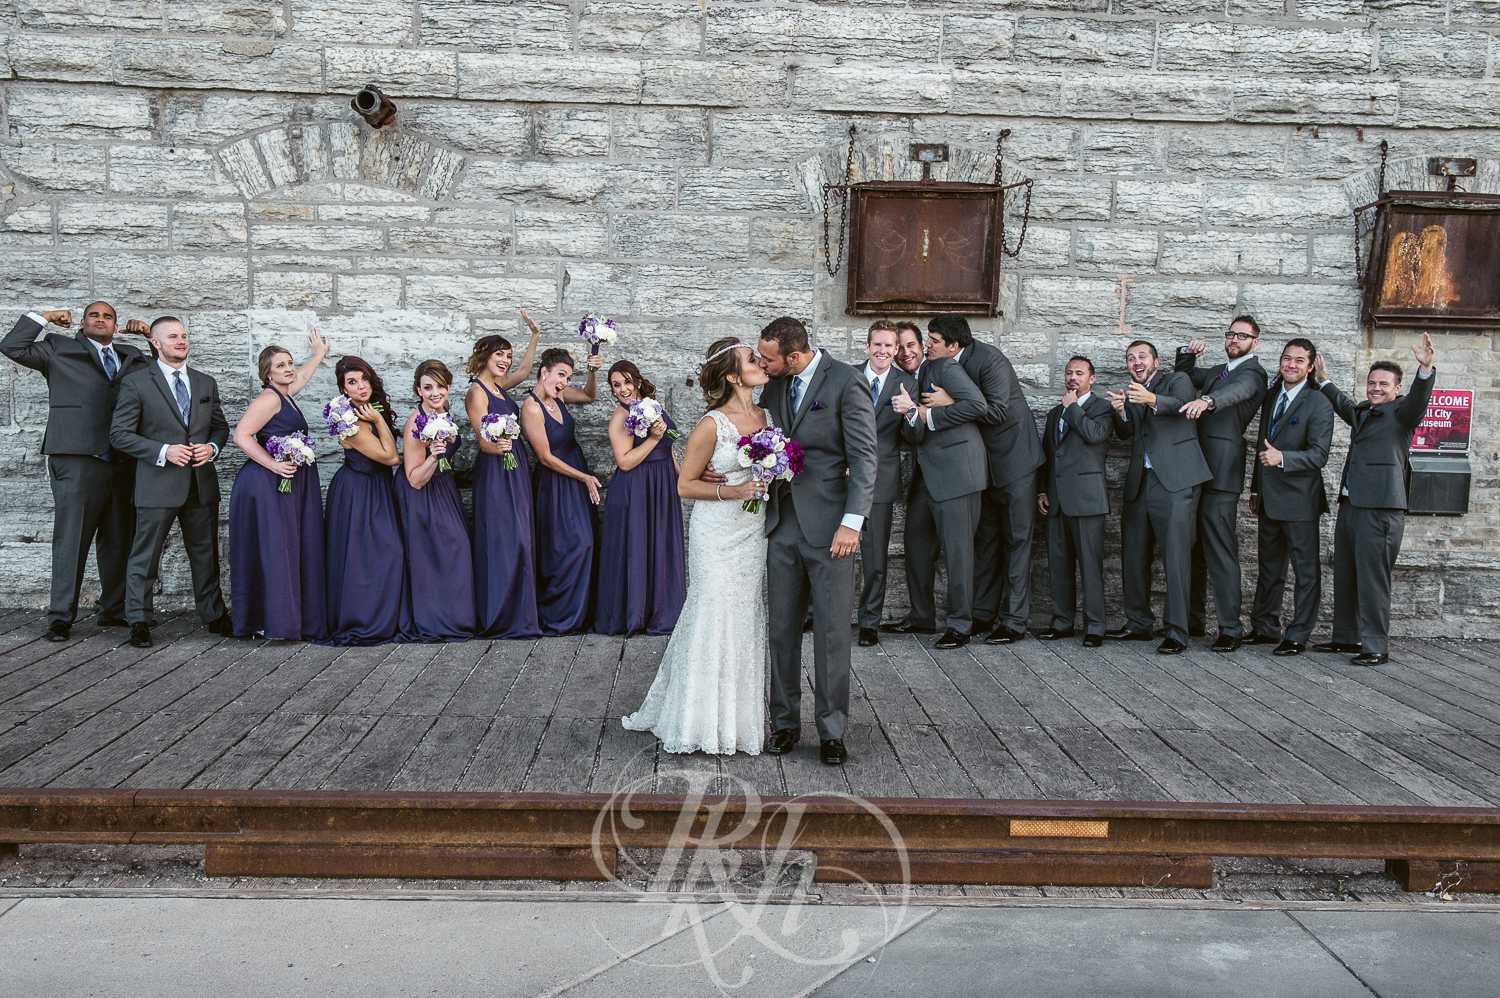 Brittany & Justin - Minnesota Wedding Photographer - Mill City Museum - RKH Images -24.jpg